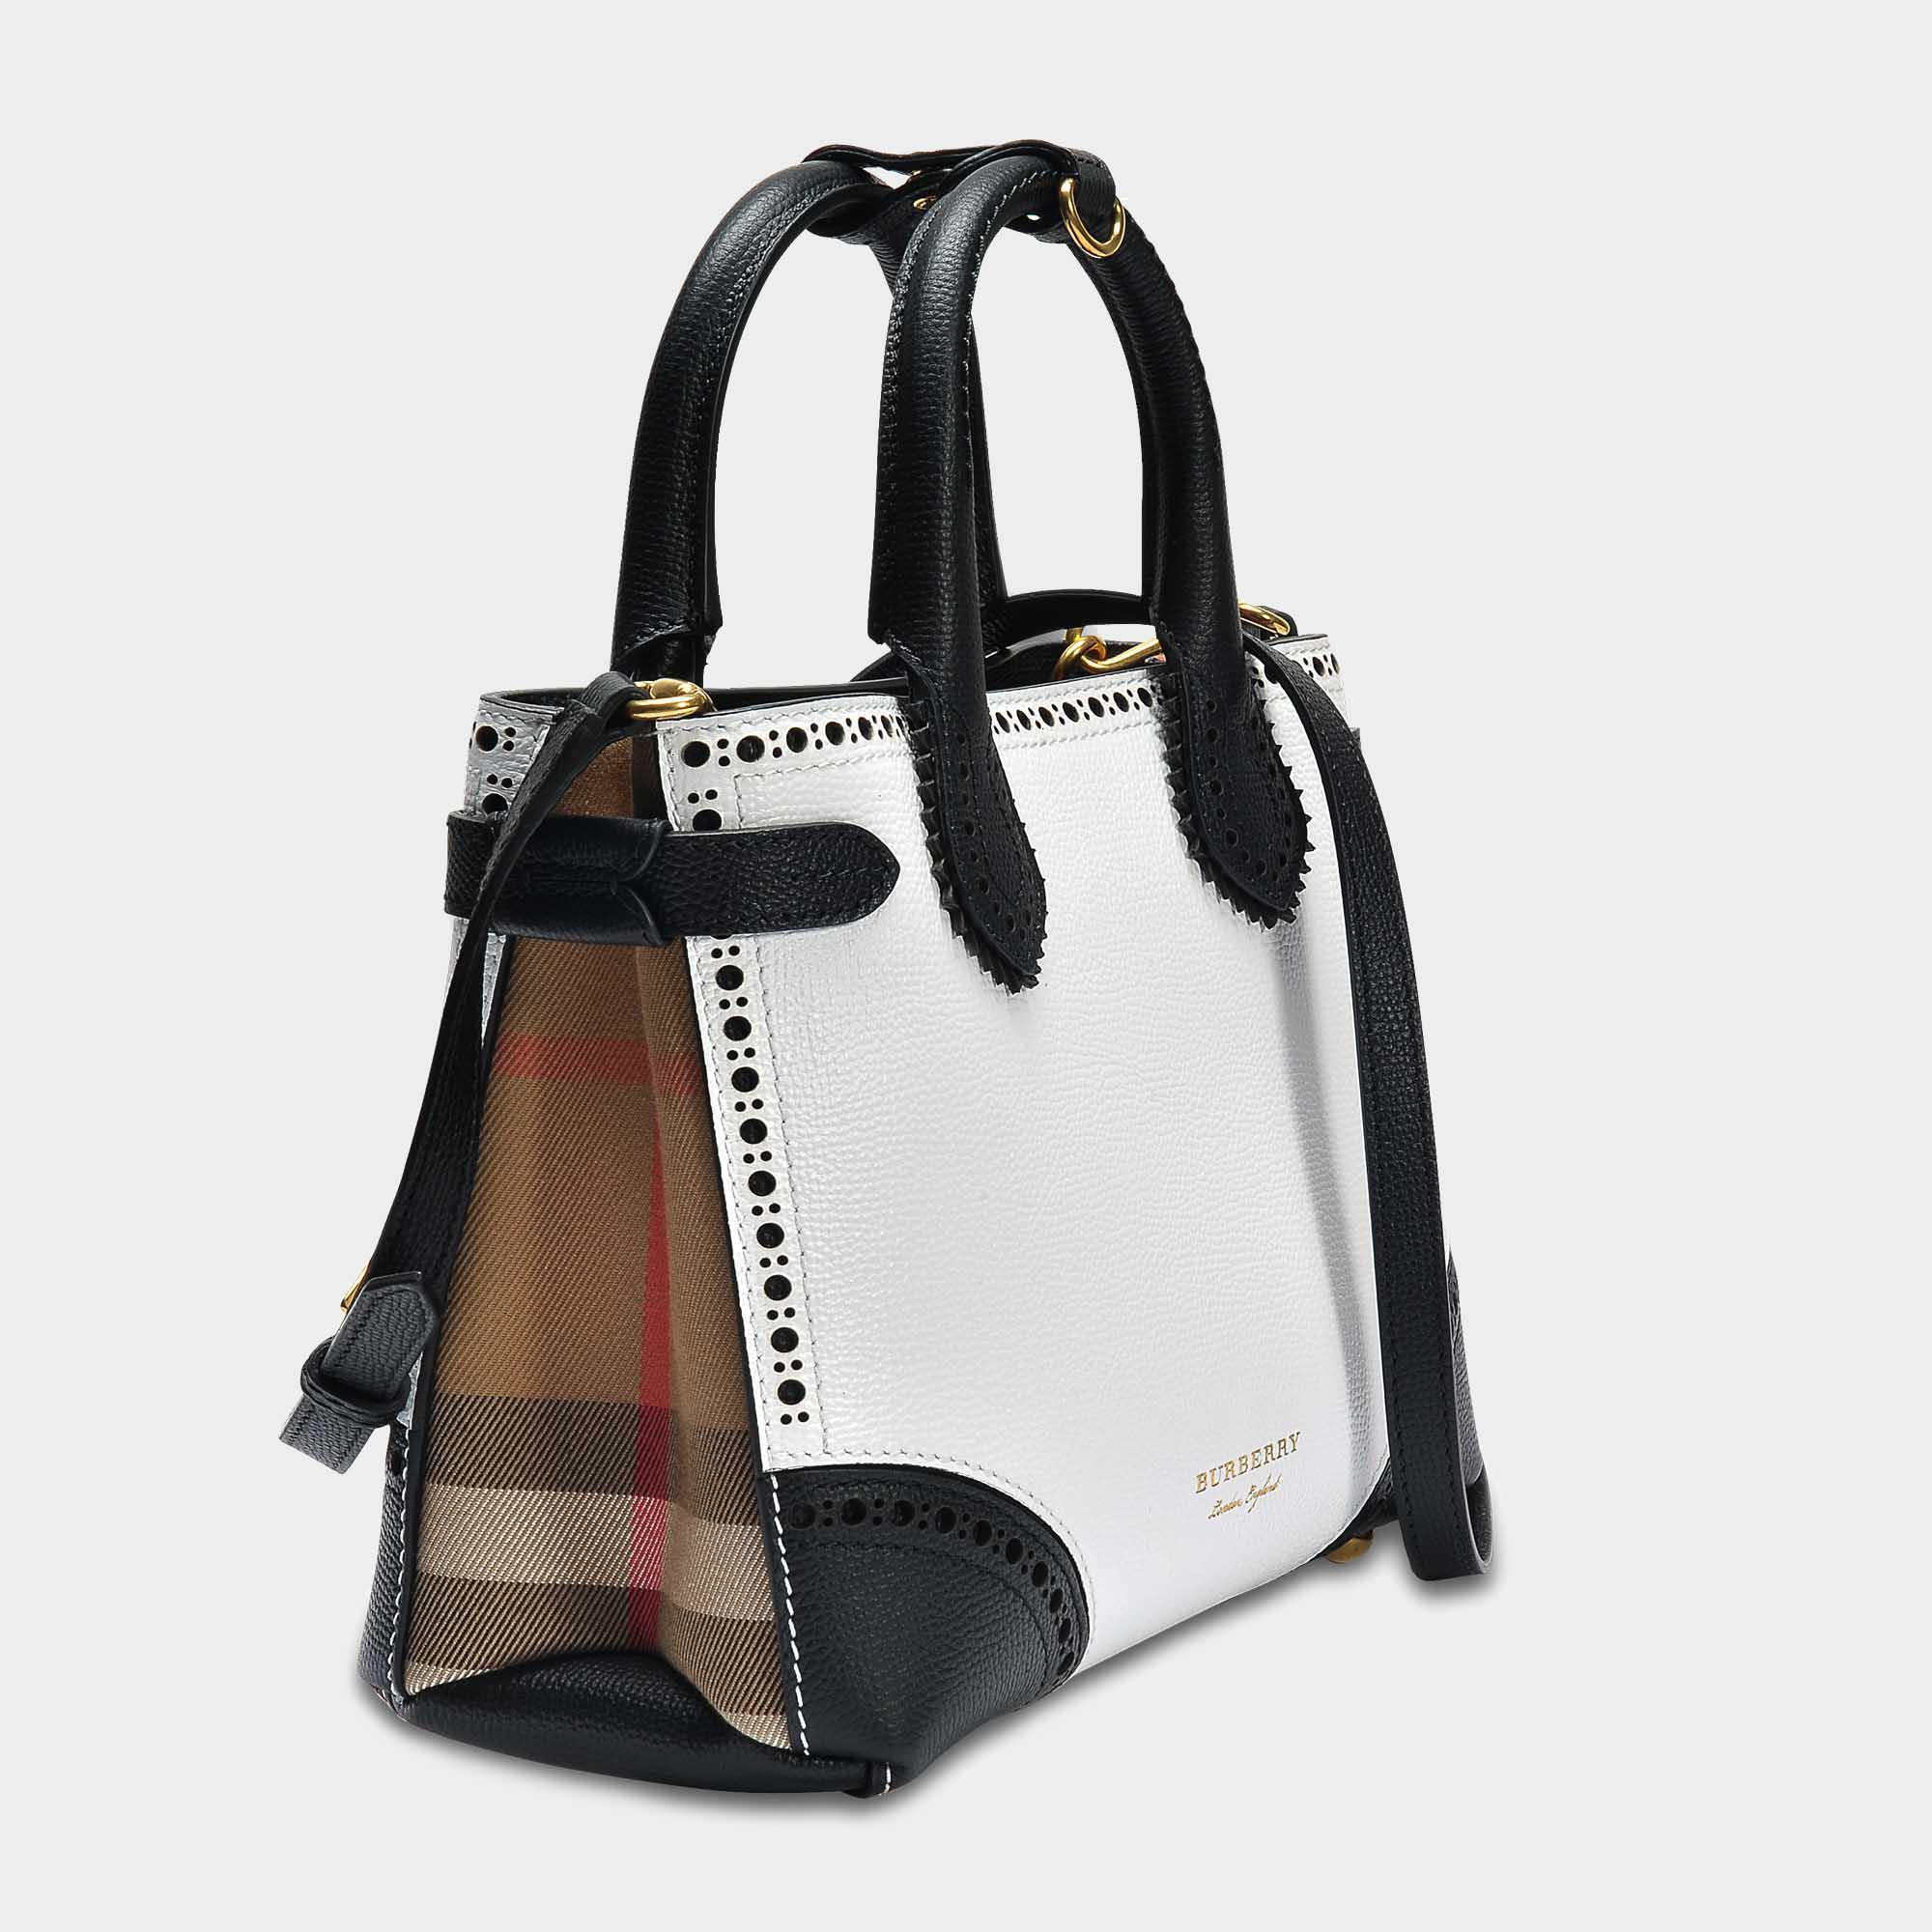 22972eb1cd5c Lyst - Burberry Small Banner Bag In Black And White Grained Calfskin ...